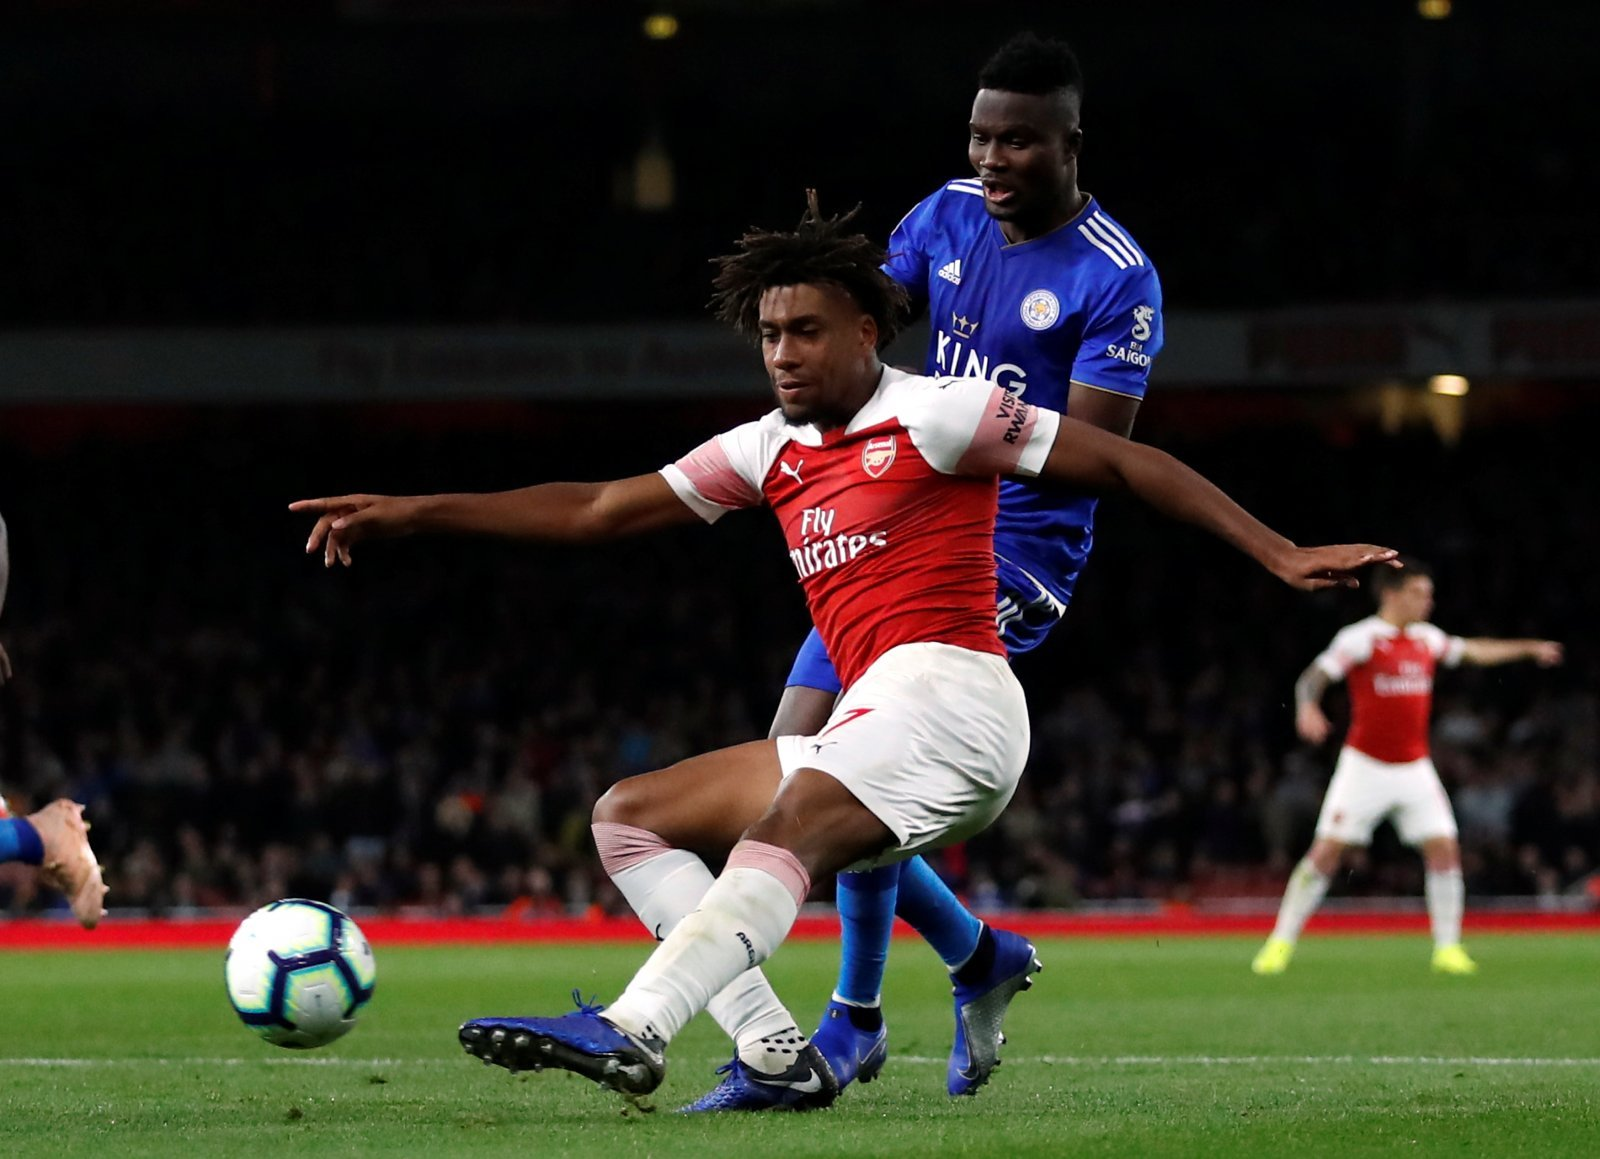 Arsenal fans on Twitter call for Alex Iwobi to up his game